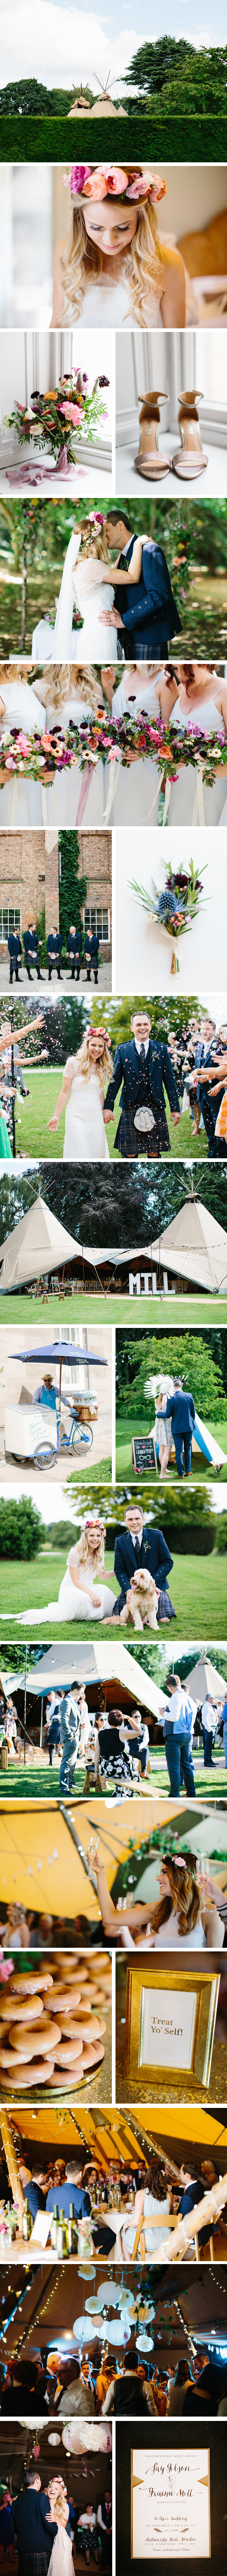 Fay & Graeme PapaKata Teepee Wedding at Saltmarshe Hall, Yorkshire